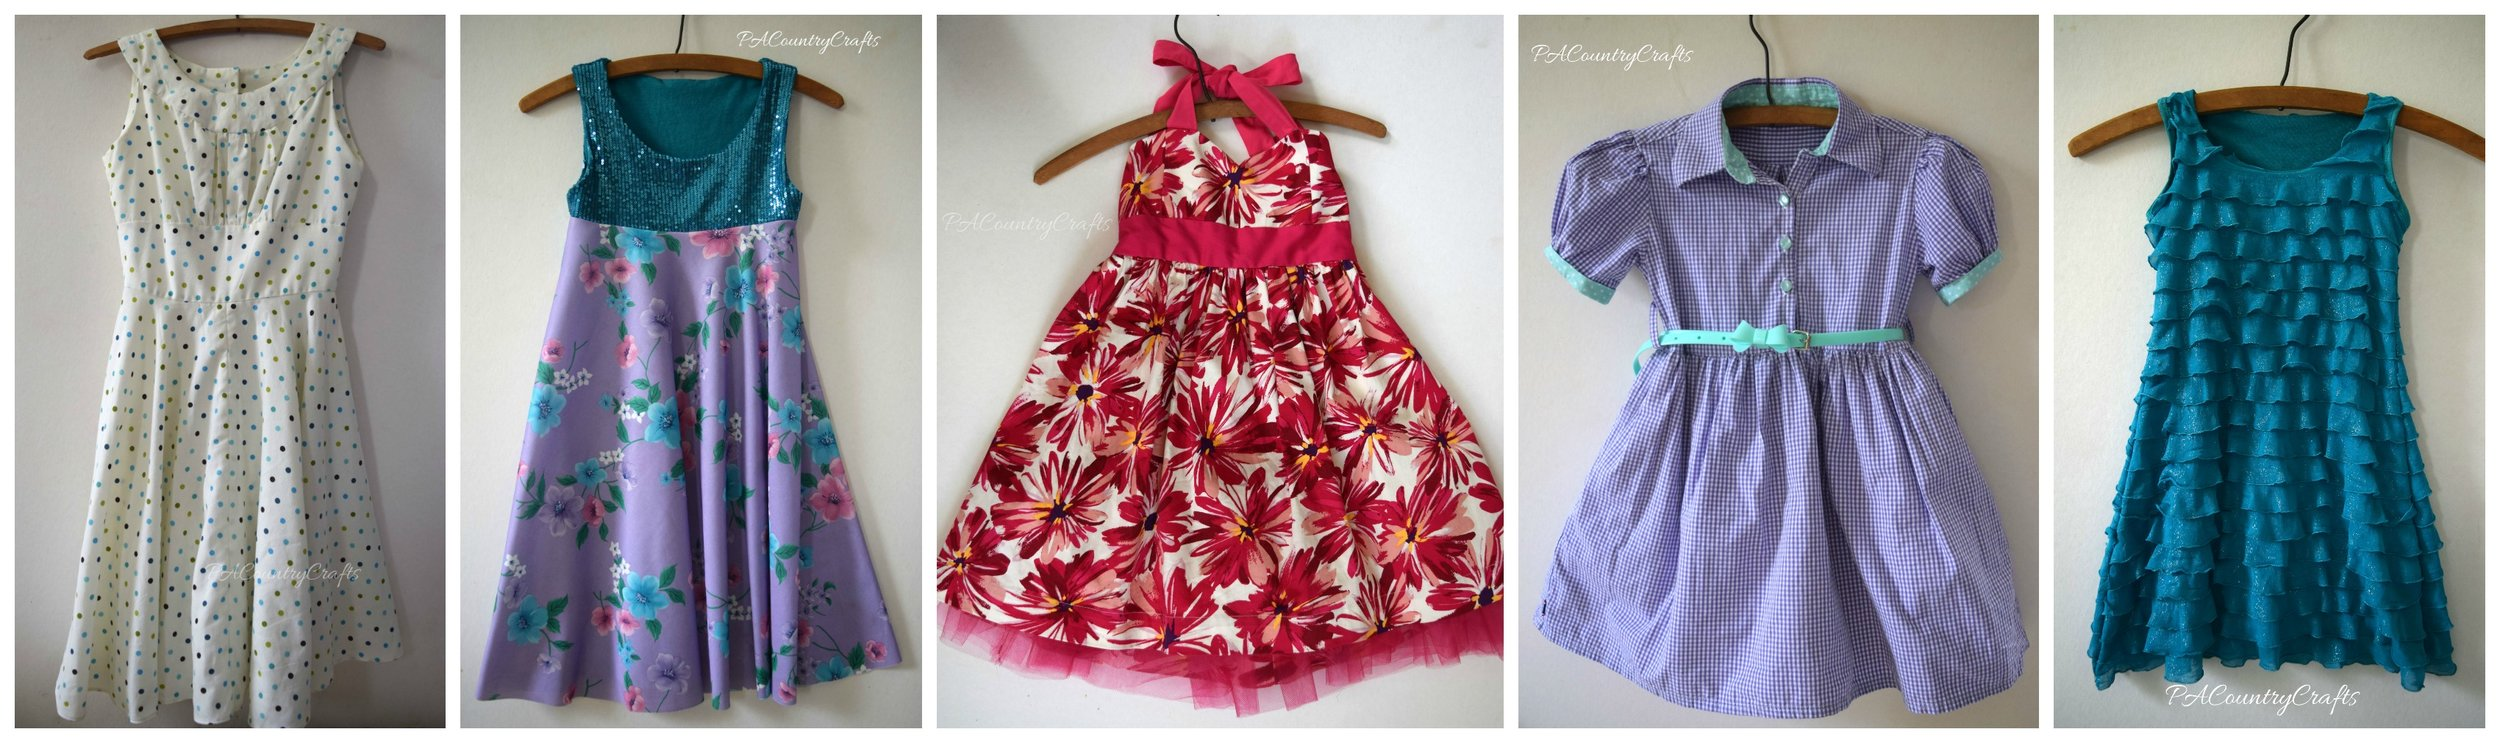 Girls dresses upcycled from thrift store sheets, shirts, etc.